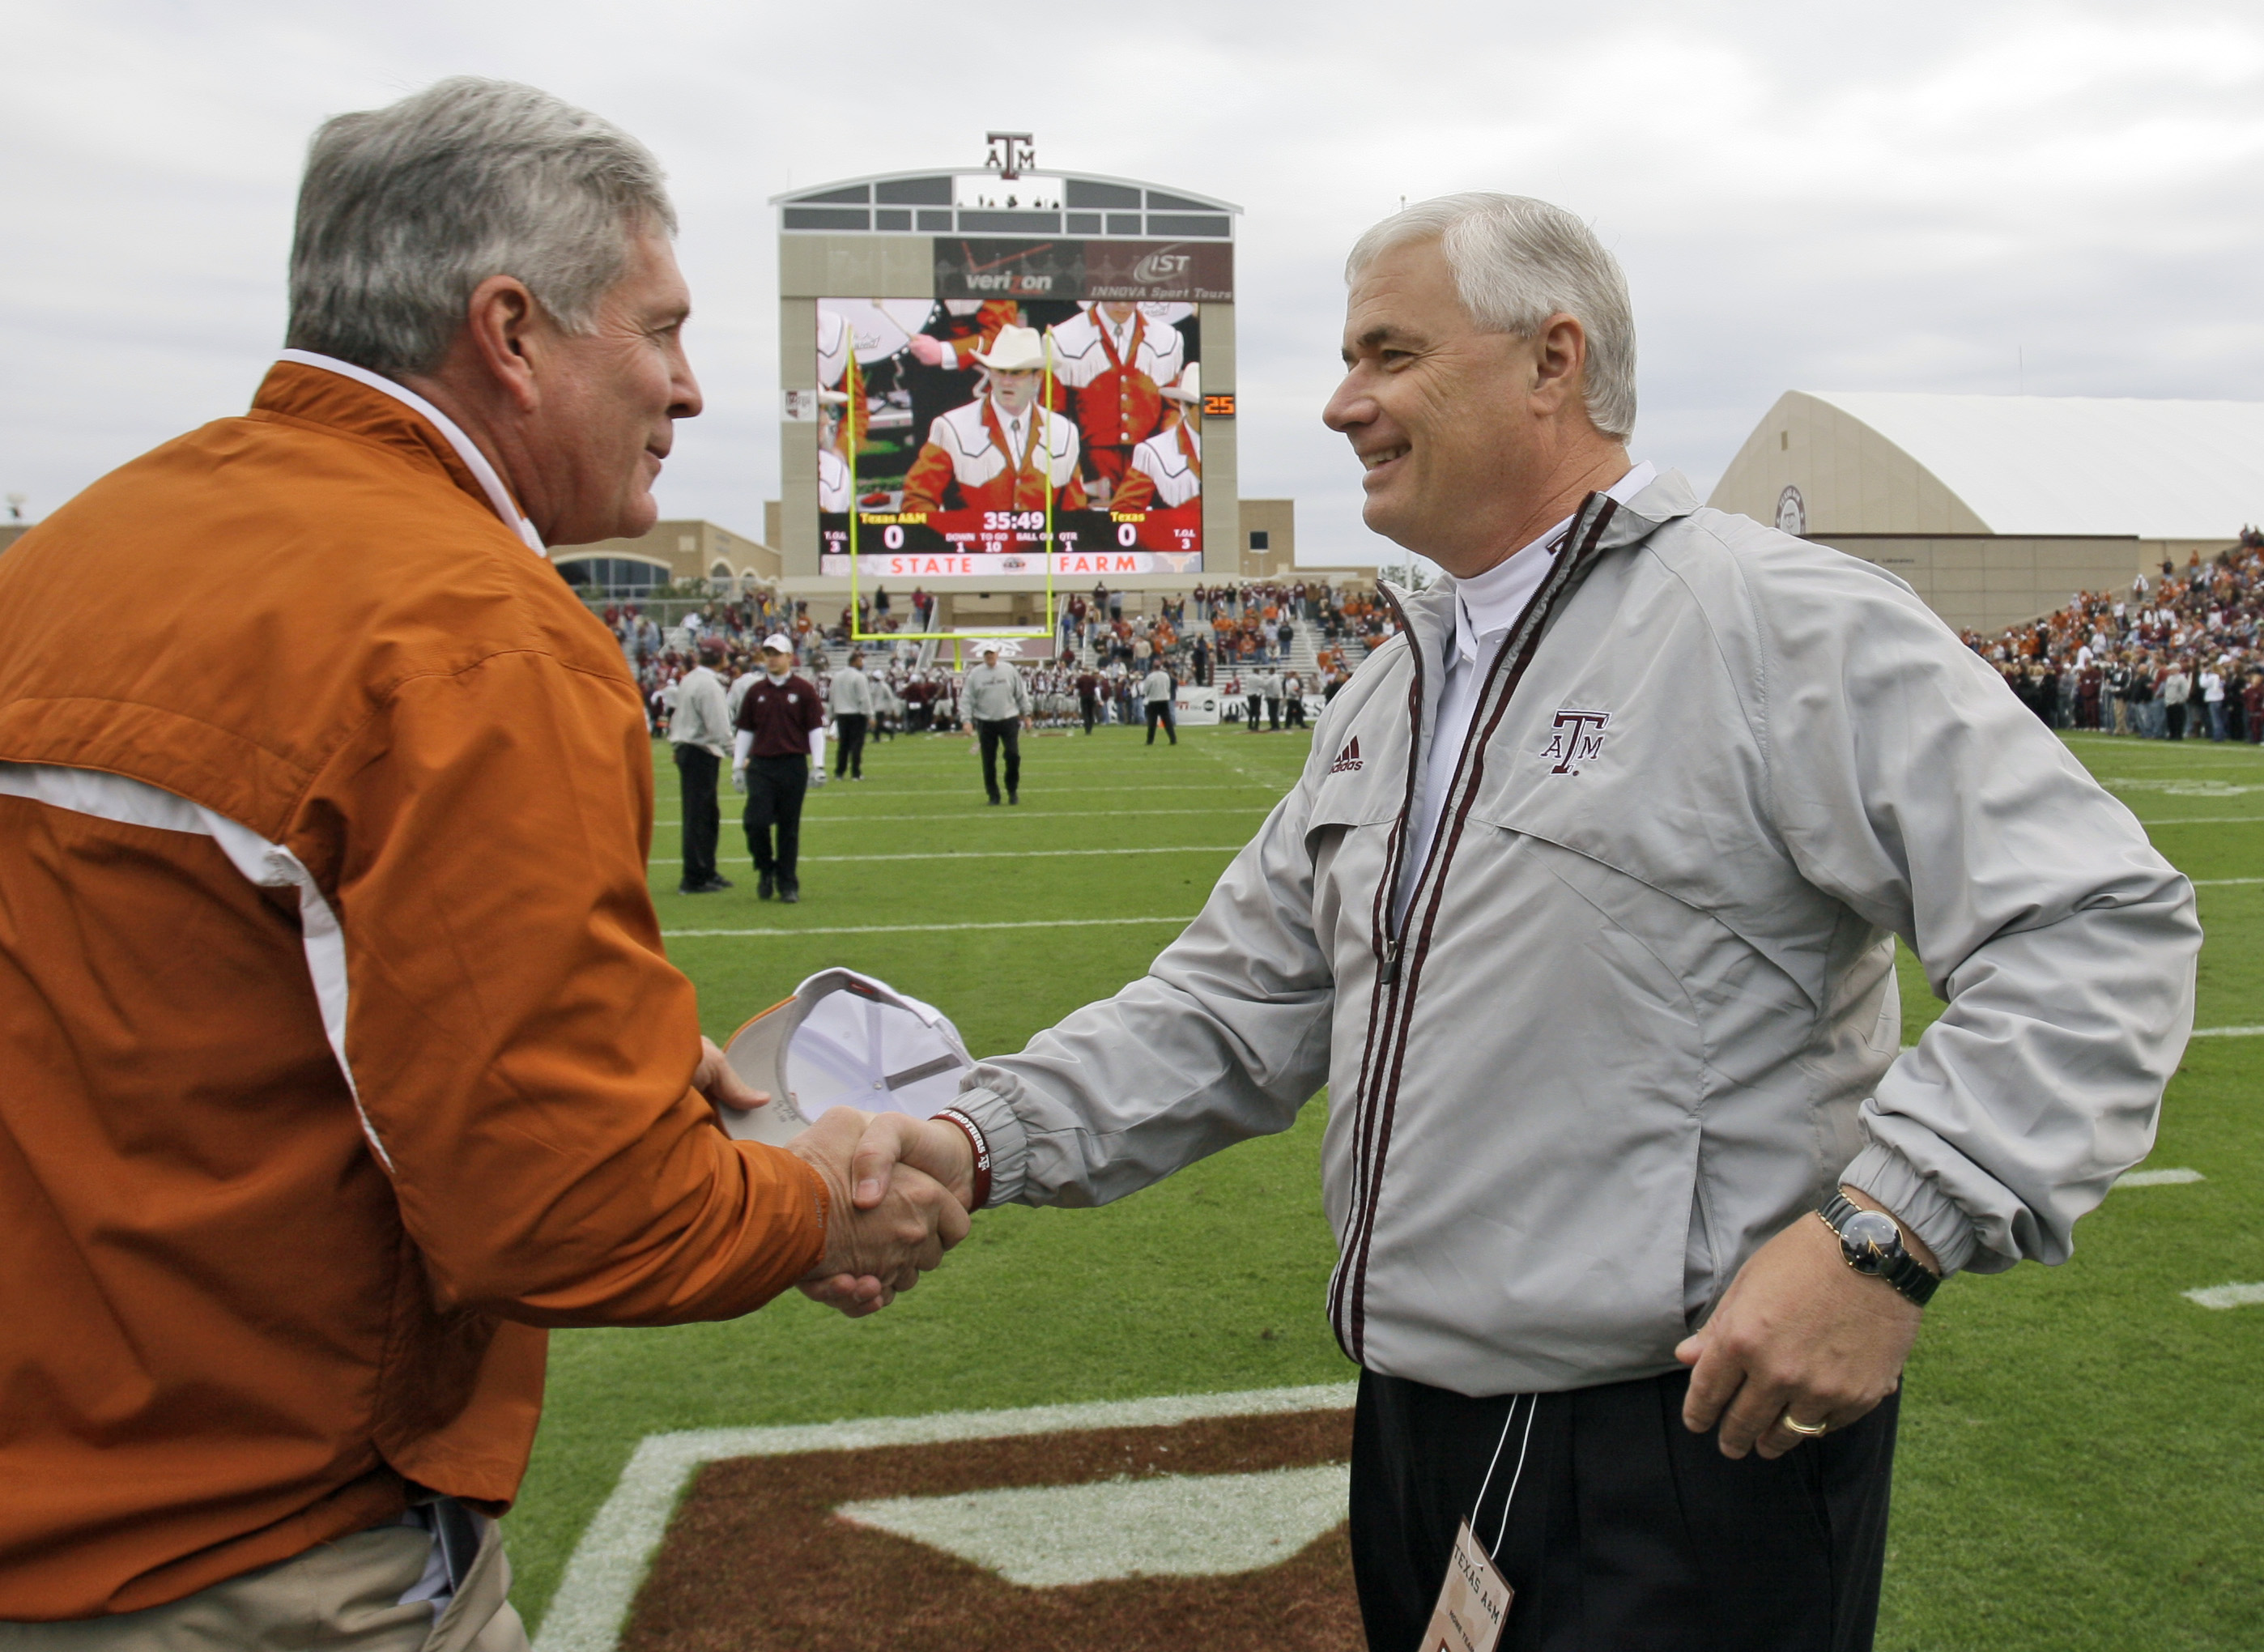 Texas coach Mack Brown, left, shakes hands with Texas A&M coach Dennis Franchione before a football game Friday, Nov. 23, 2007, in College Station, Texas. (AP Photo/David J. Phillip)